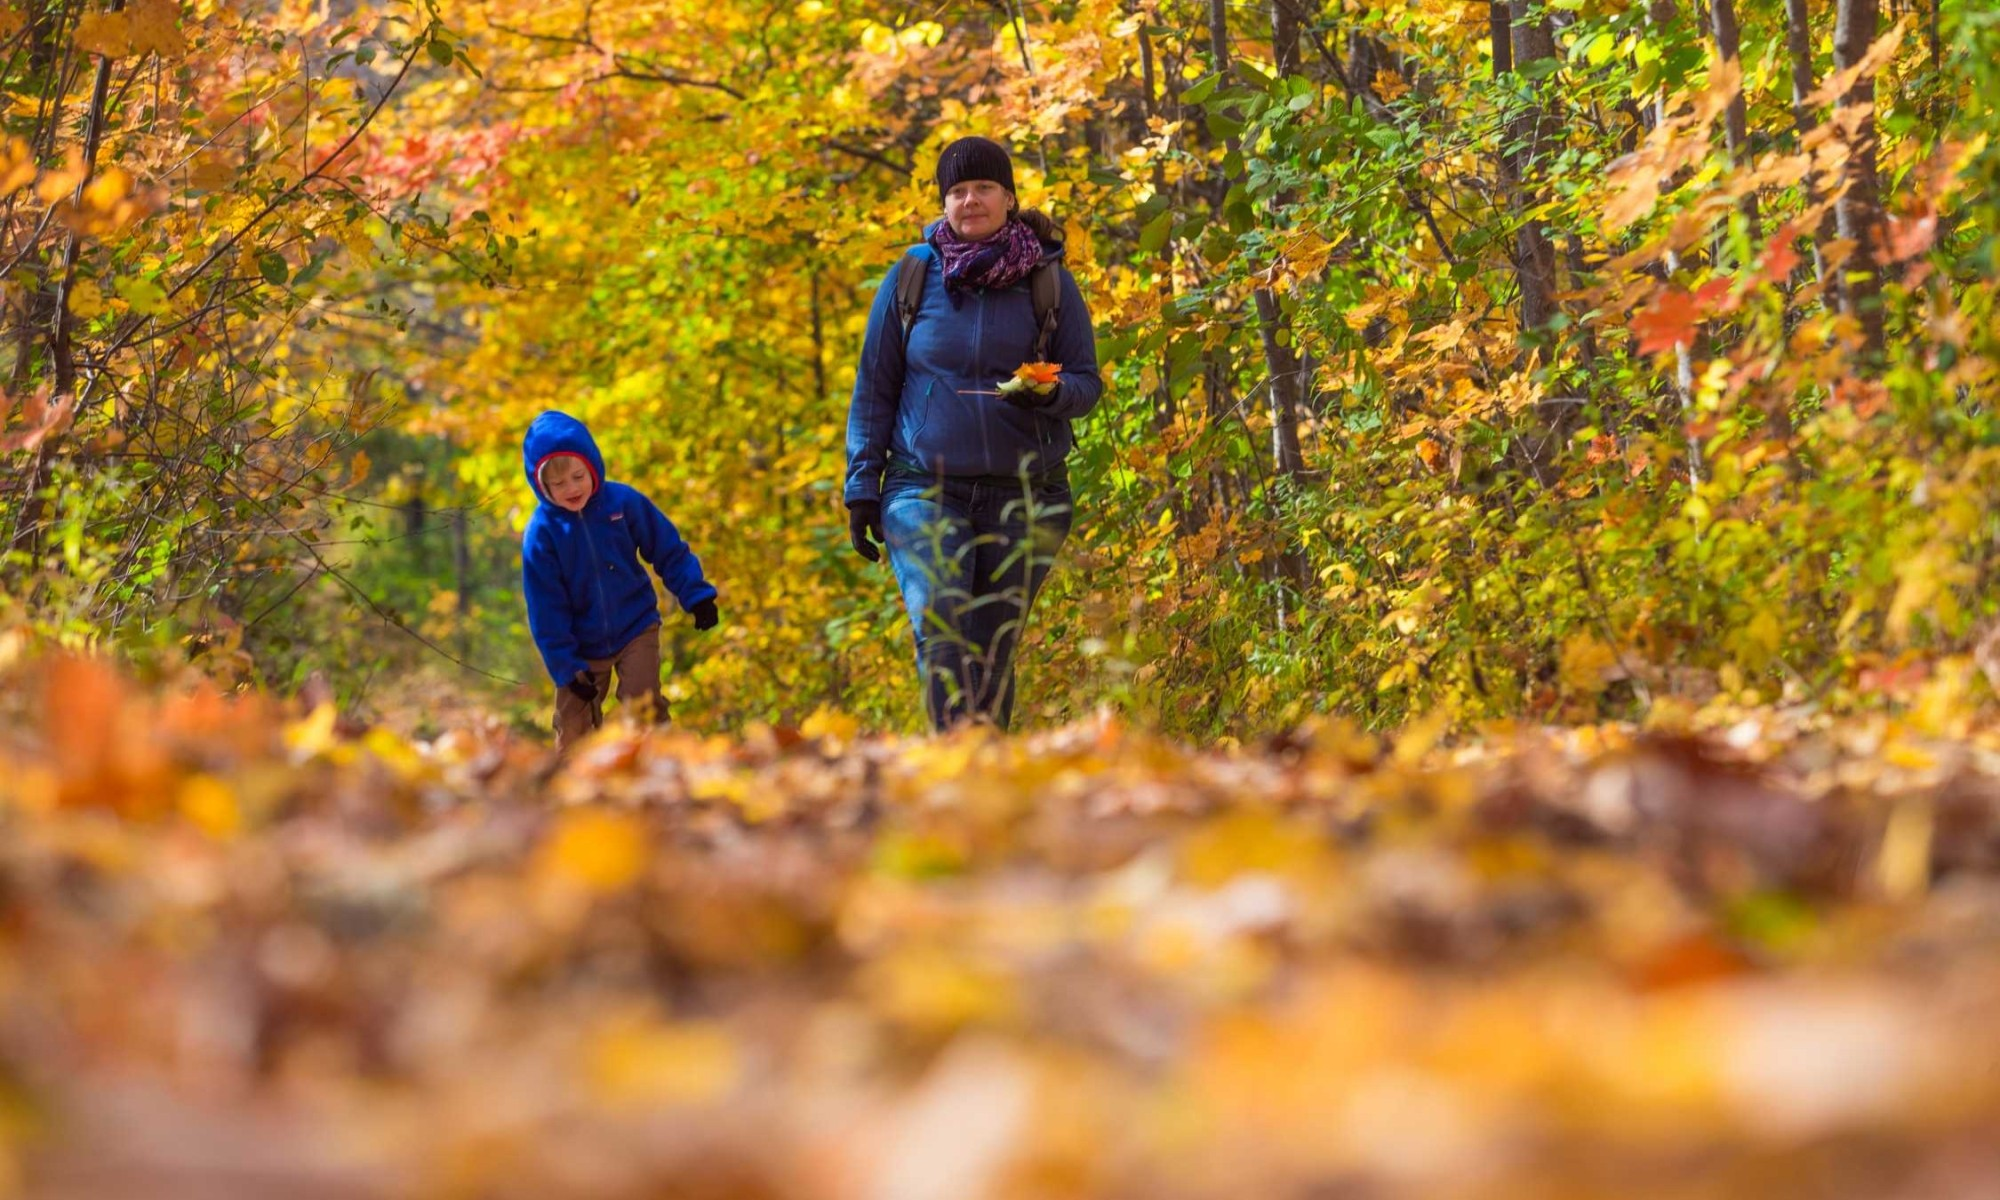 Rheanna and her son walking in the fall leaves